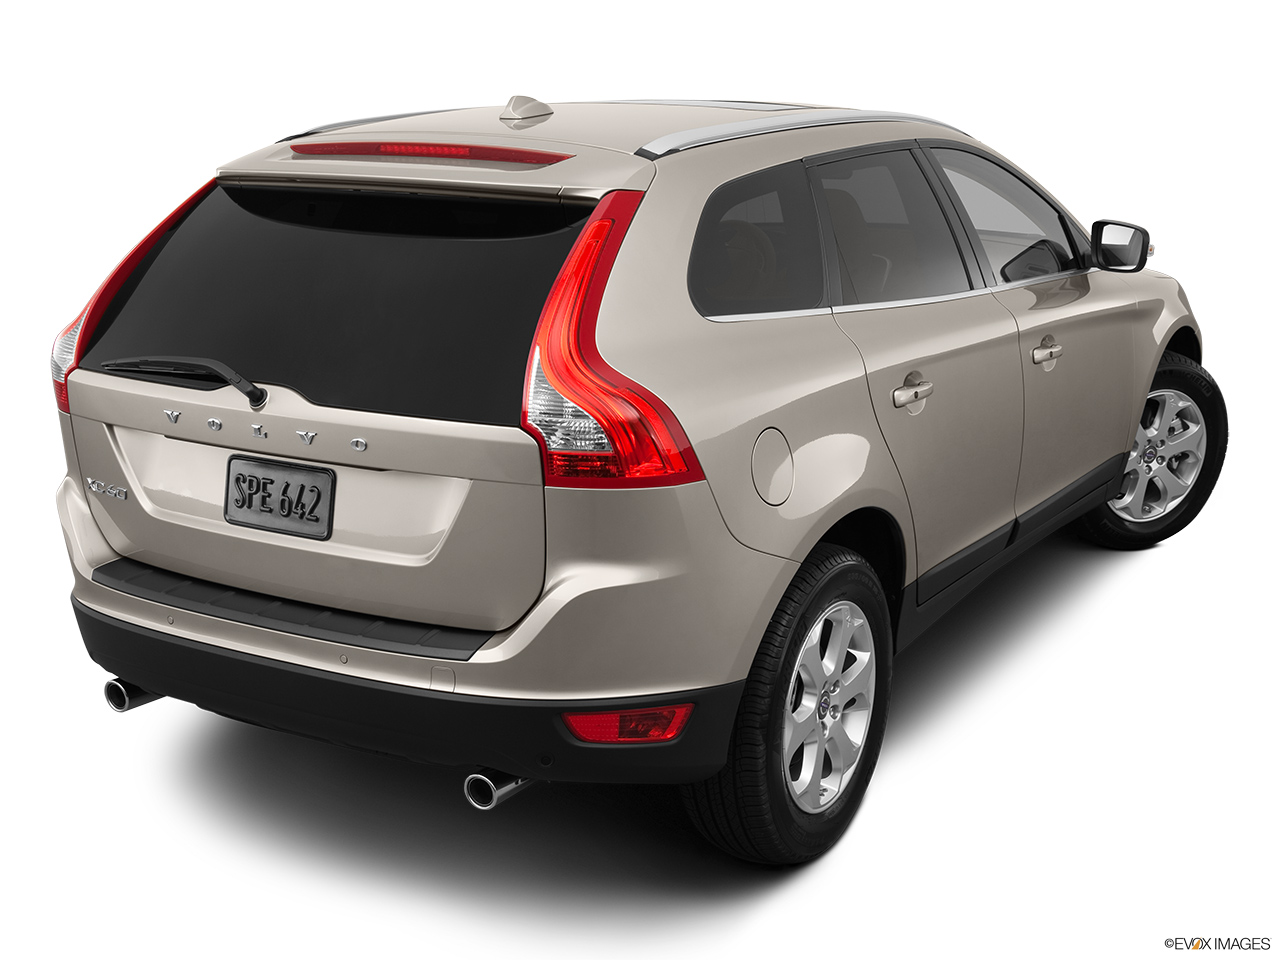 2013 Volvo XC60 3.2 FWD Premier Plus Rear 3/4 angle view.